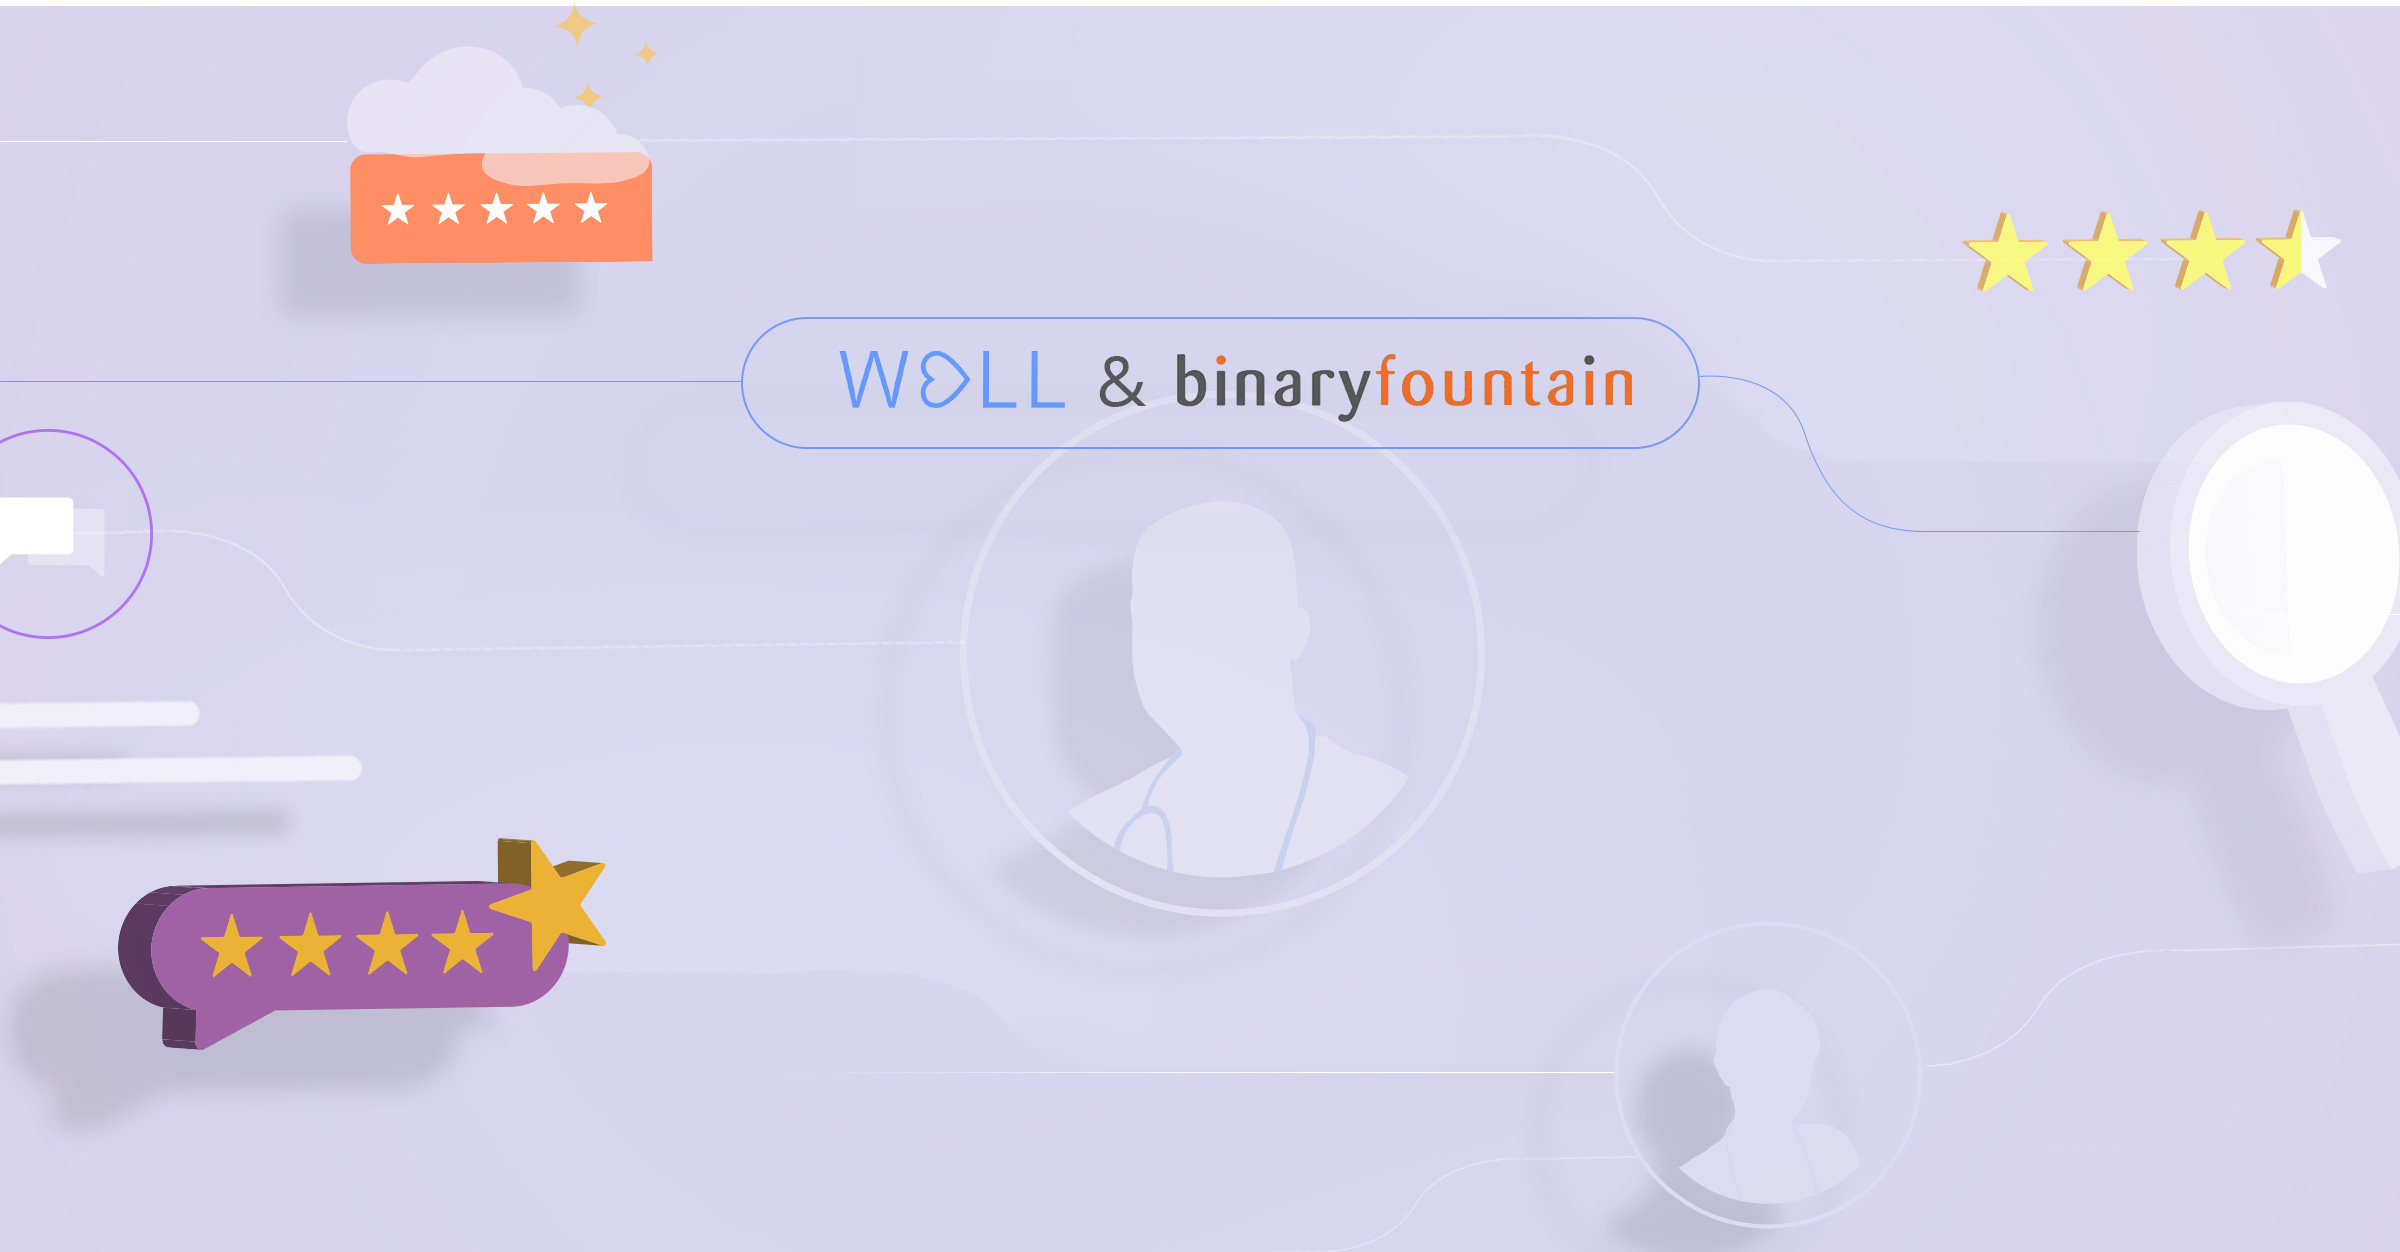 binary fountain and well partnership